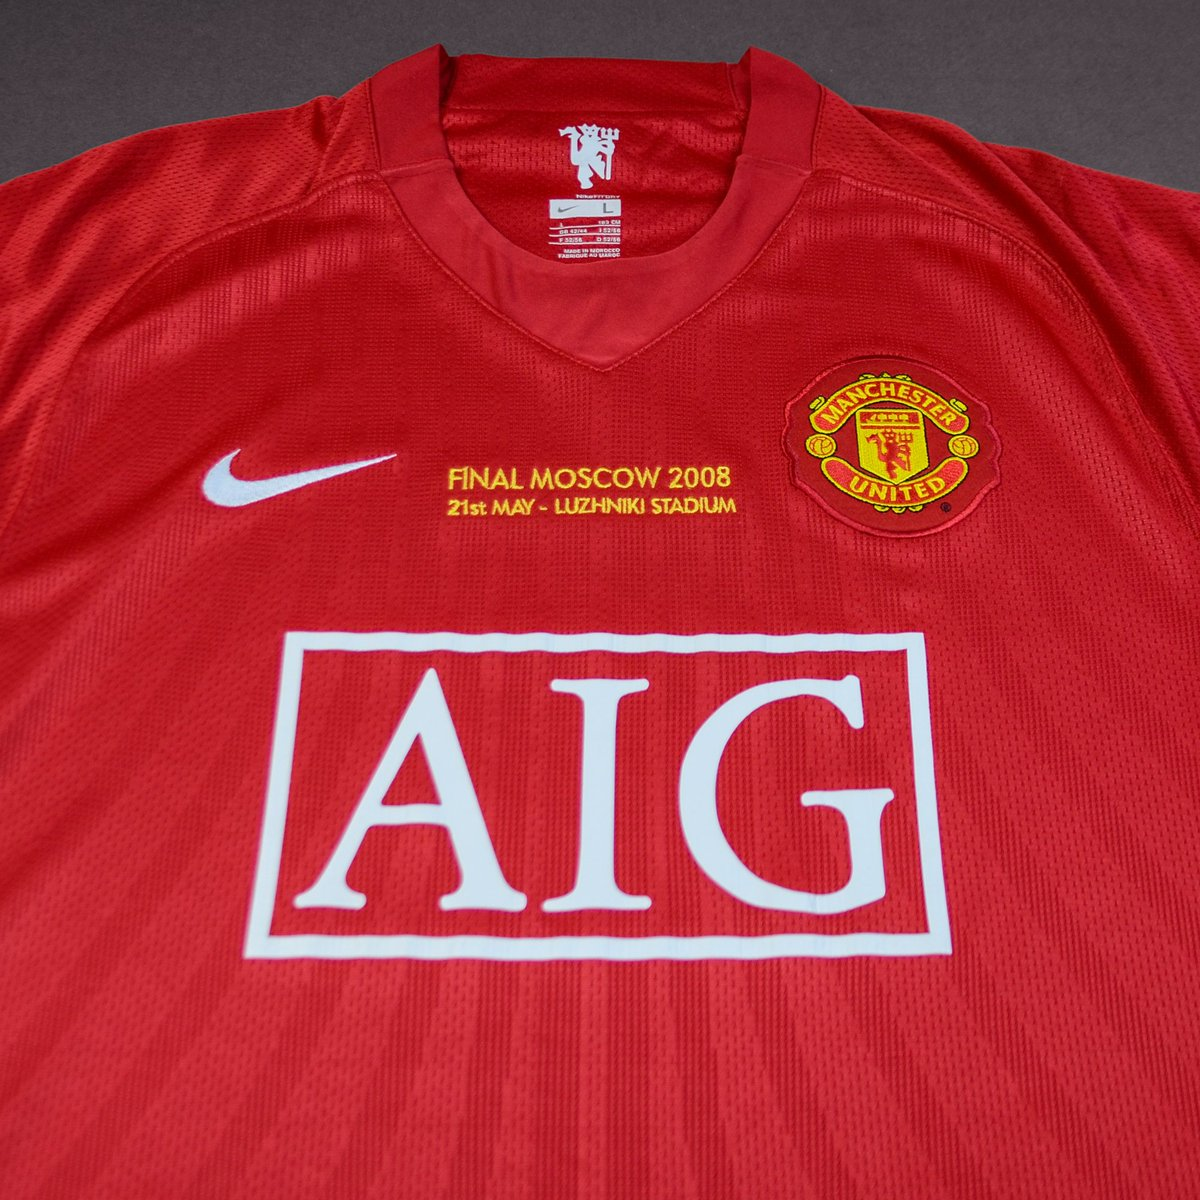 classic football shirts on twitter man united 2008 uefa champions league final shirt available now here https t co mygeqg3vn6 2008 uefa champions league final shirt